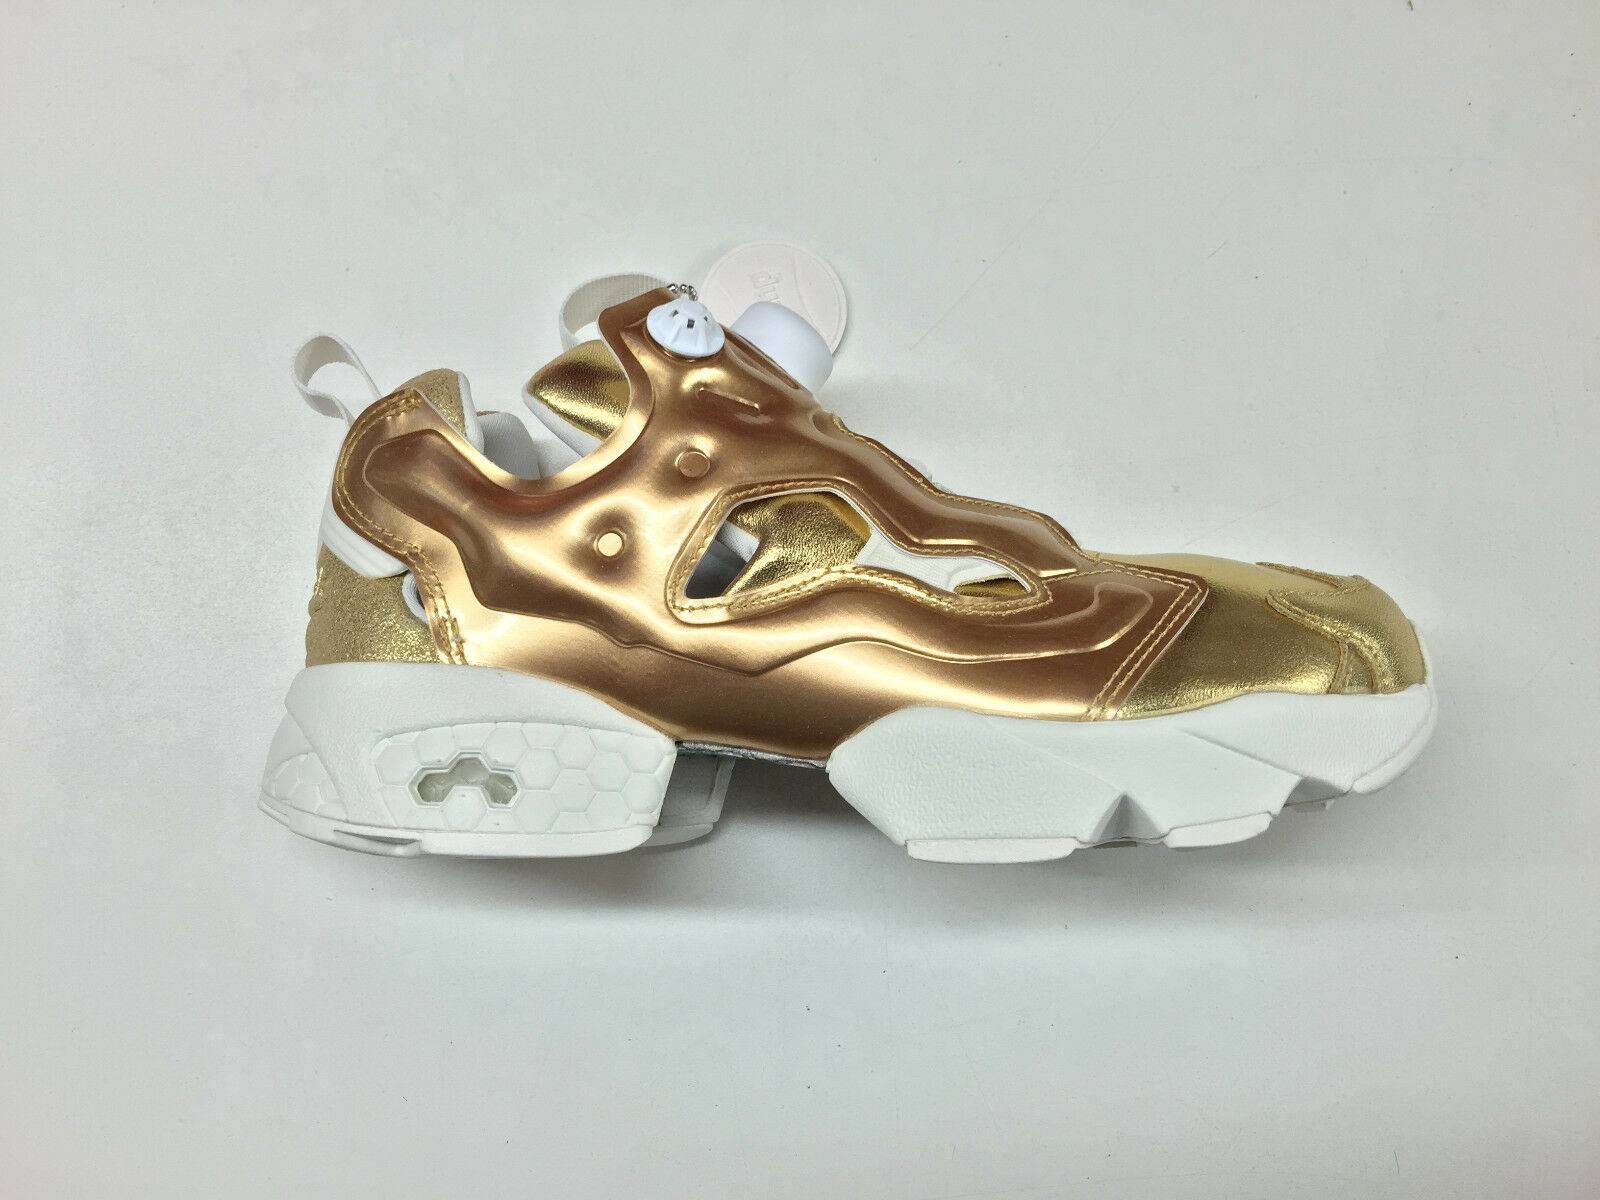 Reebok femmes InstaPump Fury Celebrate Pot O' Gold Brass Trainers V70094 1702-74